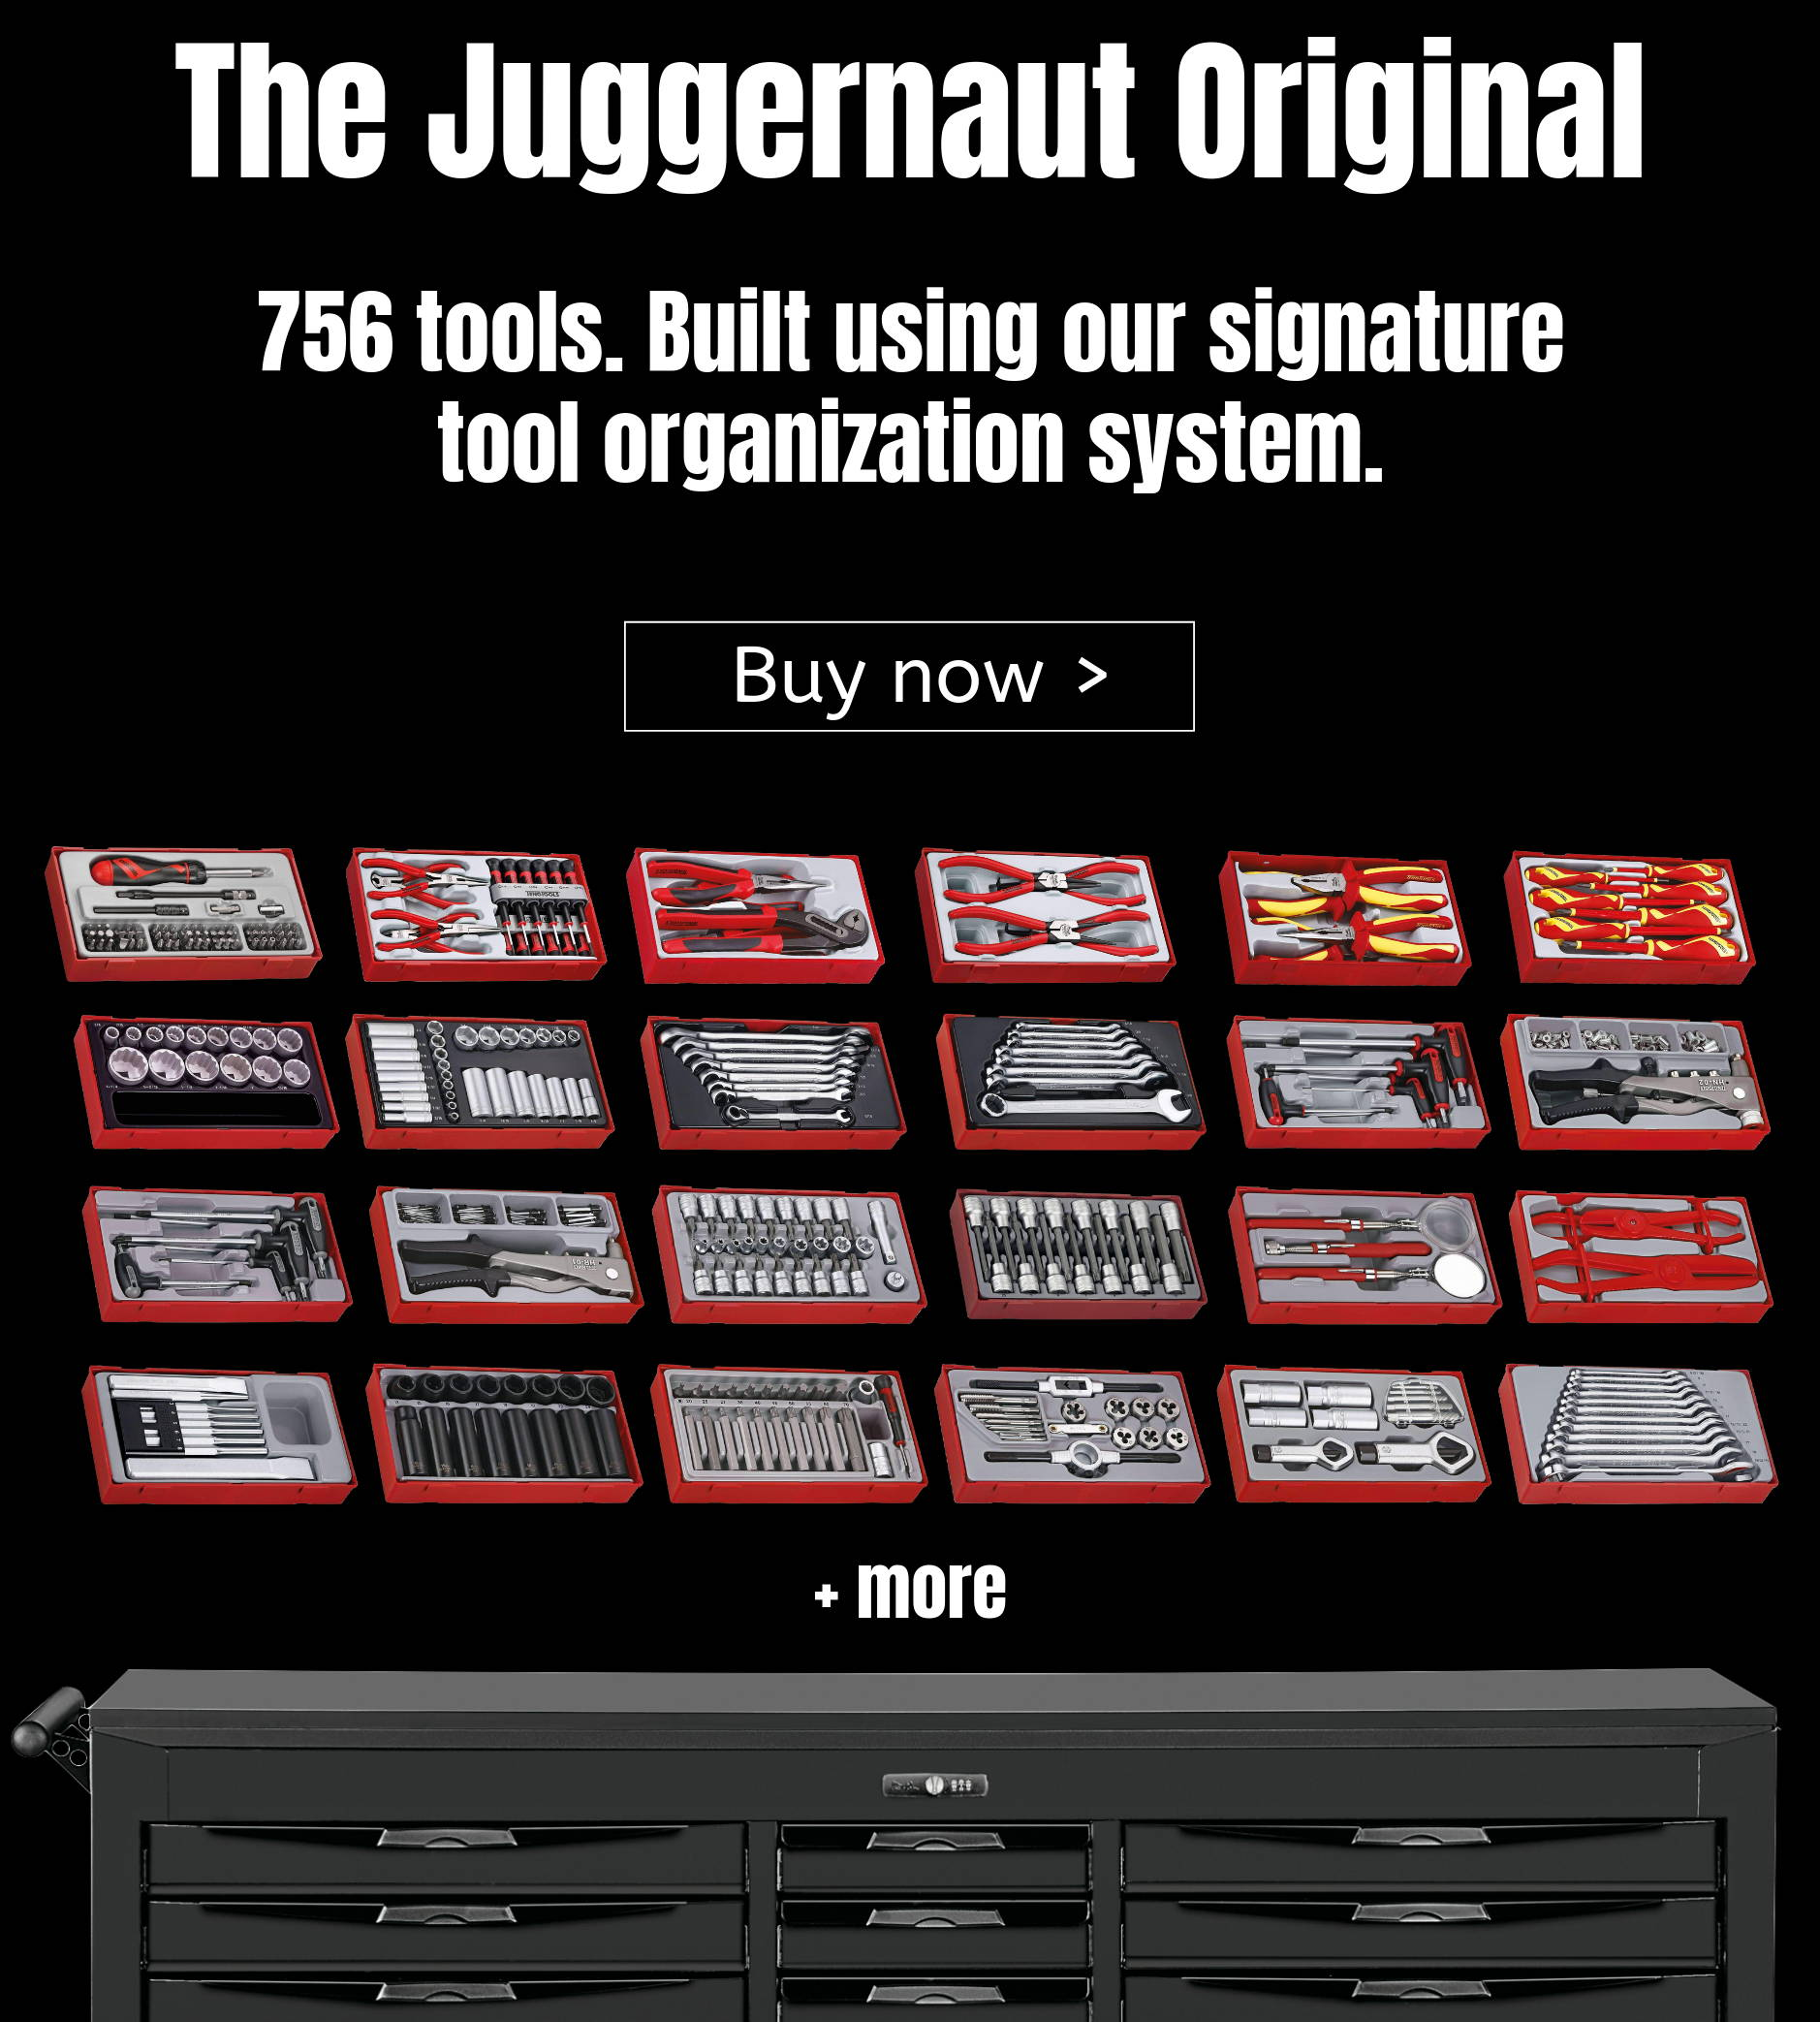 The Juggernaut Original. 756 tools. Built using our signature tool organization system.